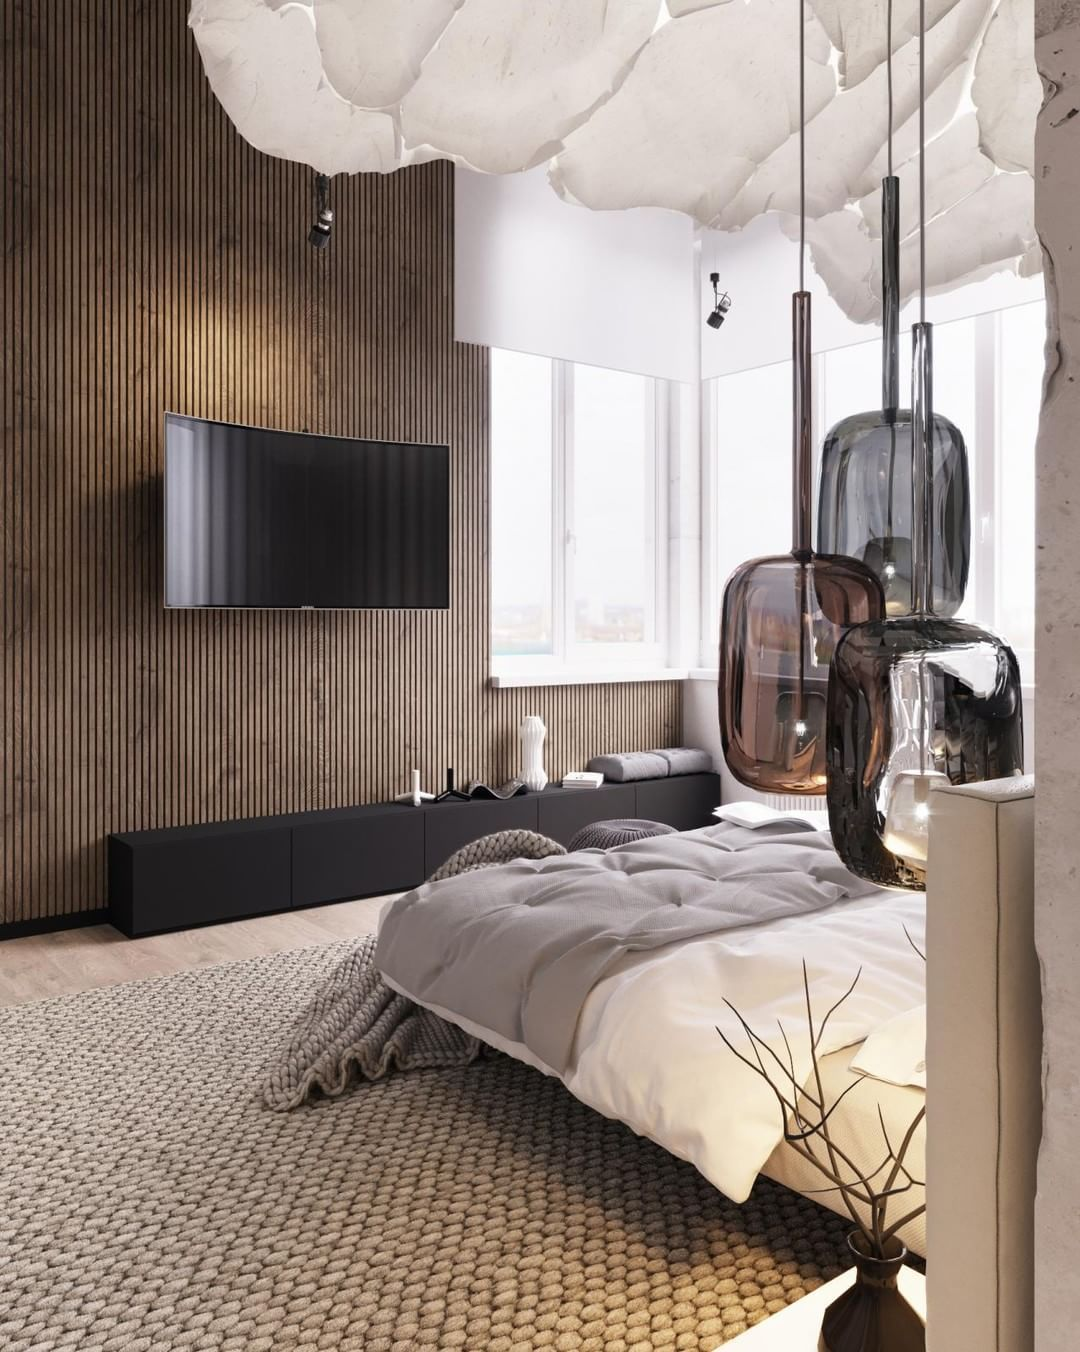 Master bedroom modern  Beautiful Master Bedrooms with Modern Interior Decor  Beautiful